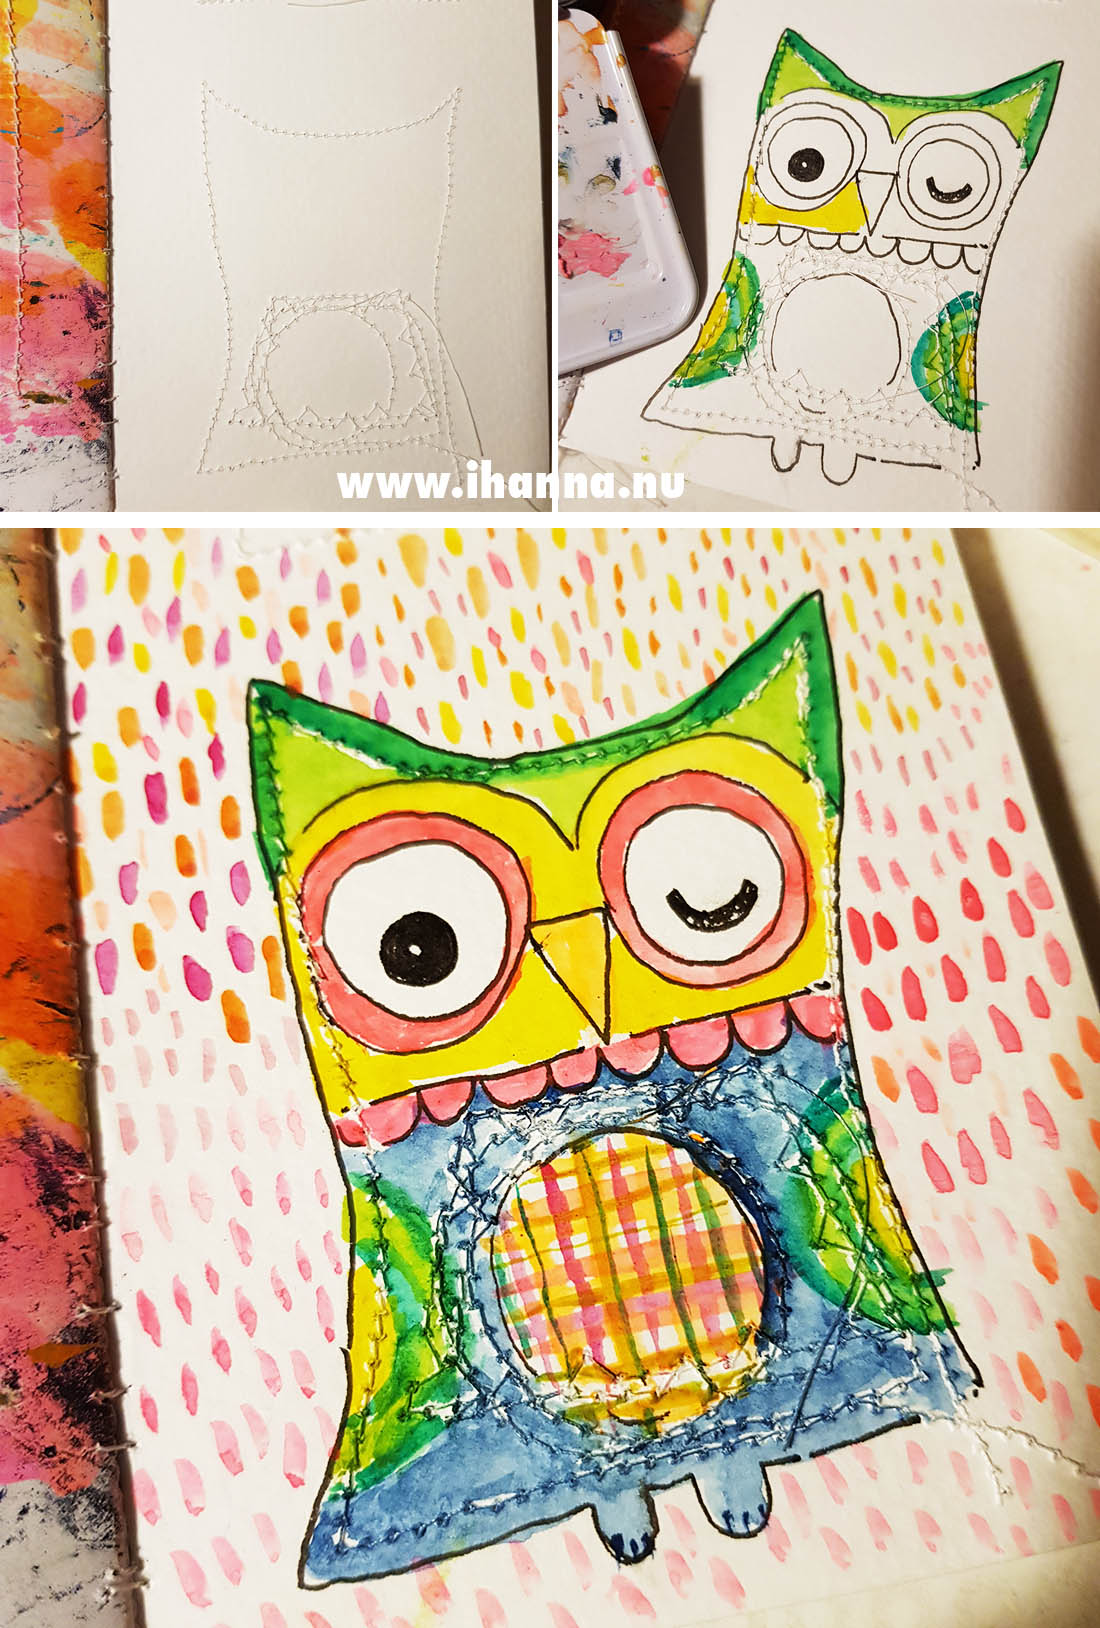 Owl drawing inside the sewn lines on the backside of this page #fillatinyjournal